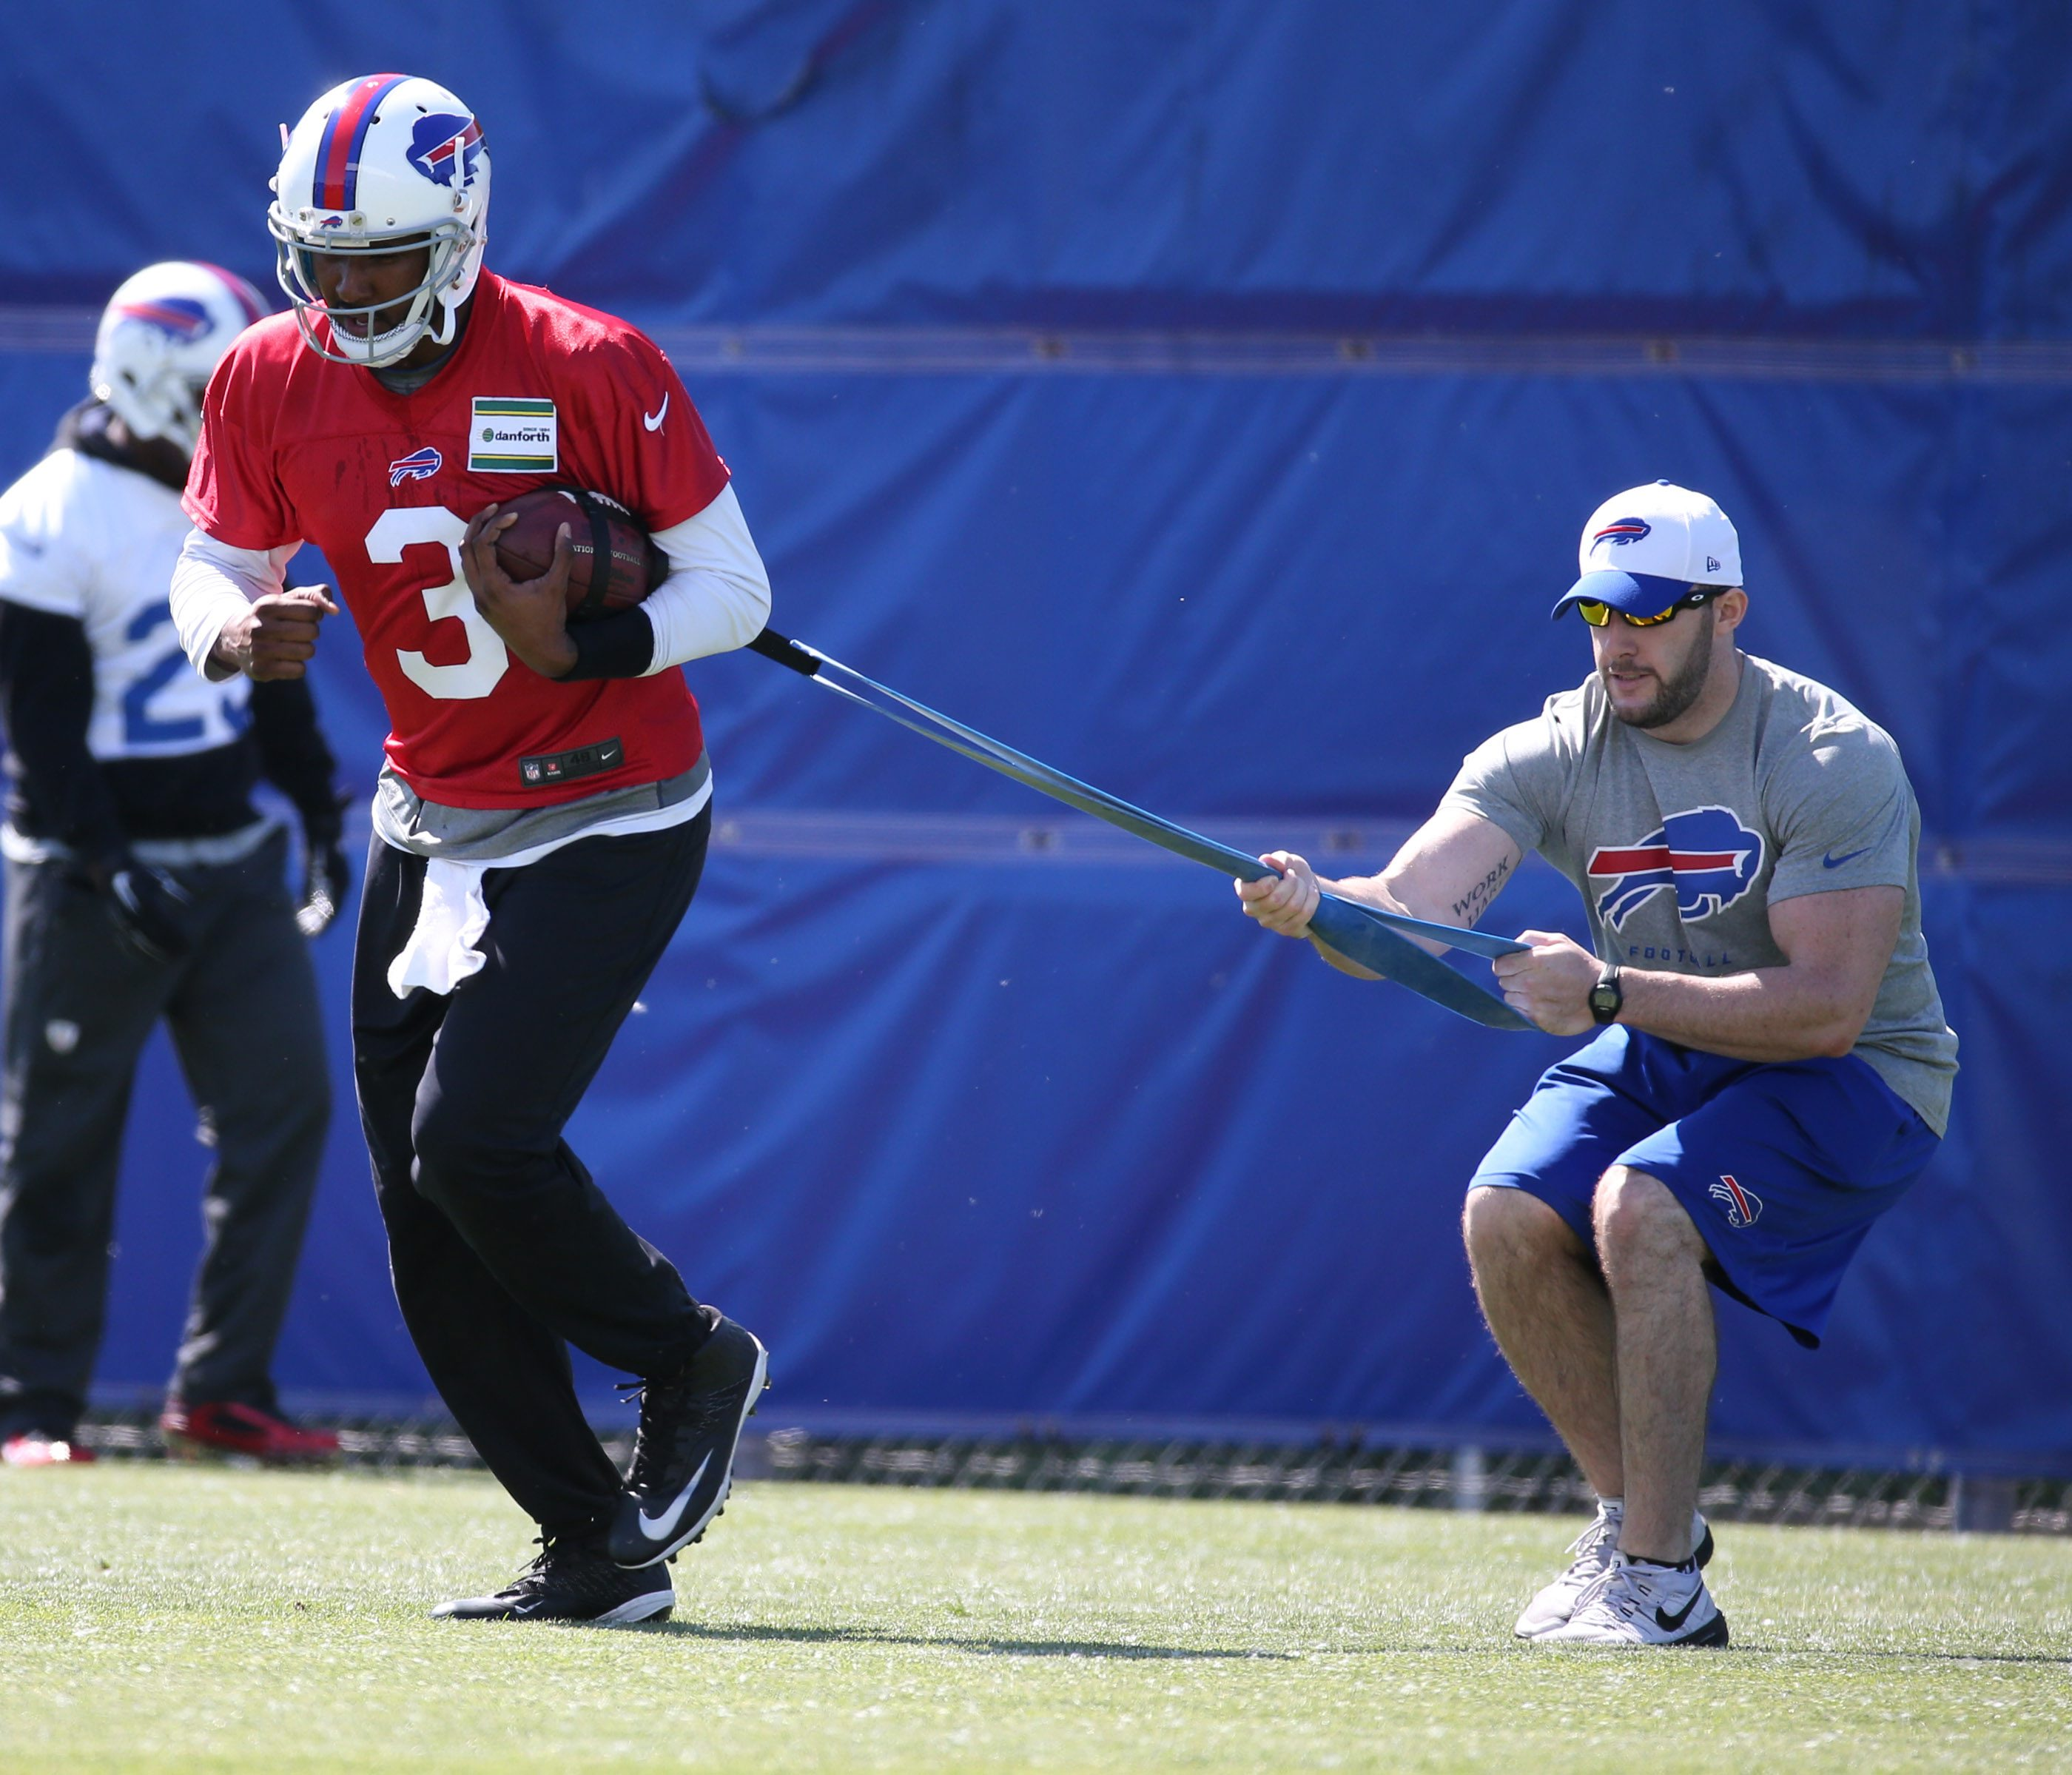 EJ Manuel and the other quarterbacks have not stepped up to be a true difference maker so far in OTAs.